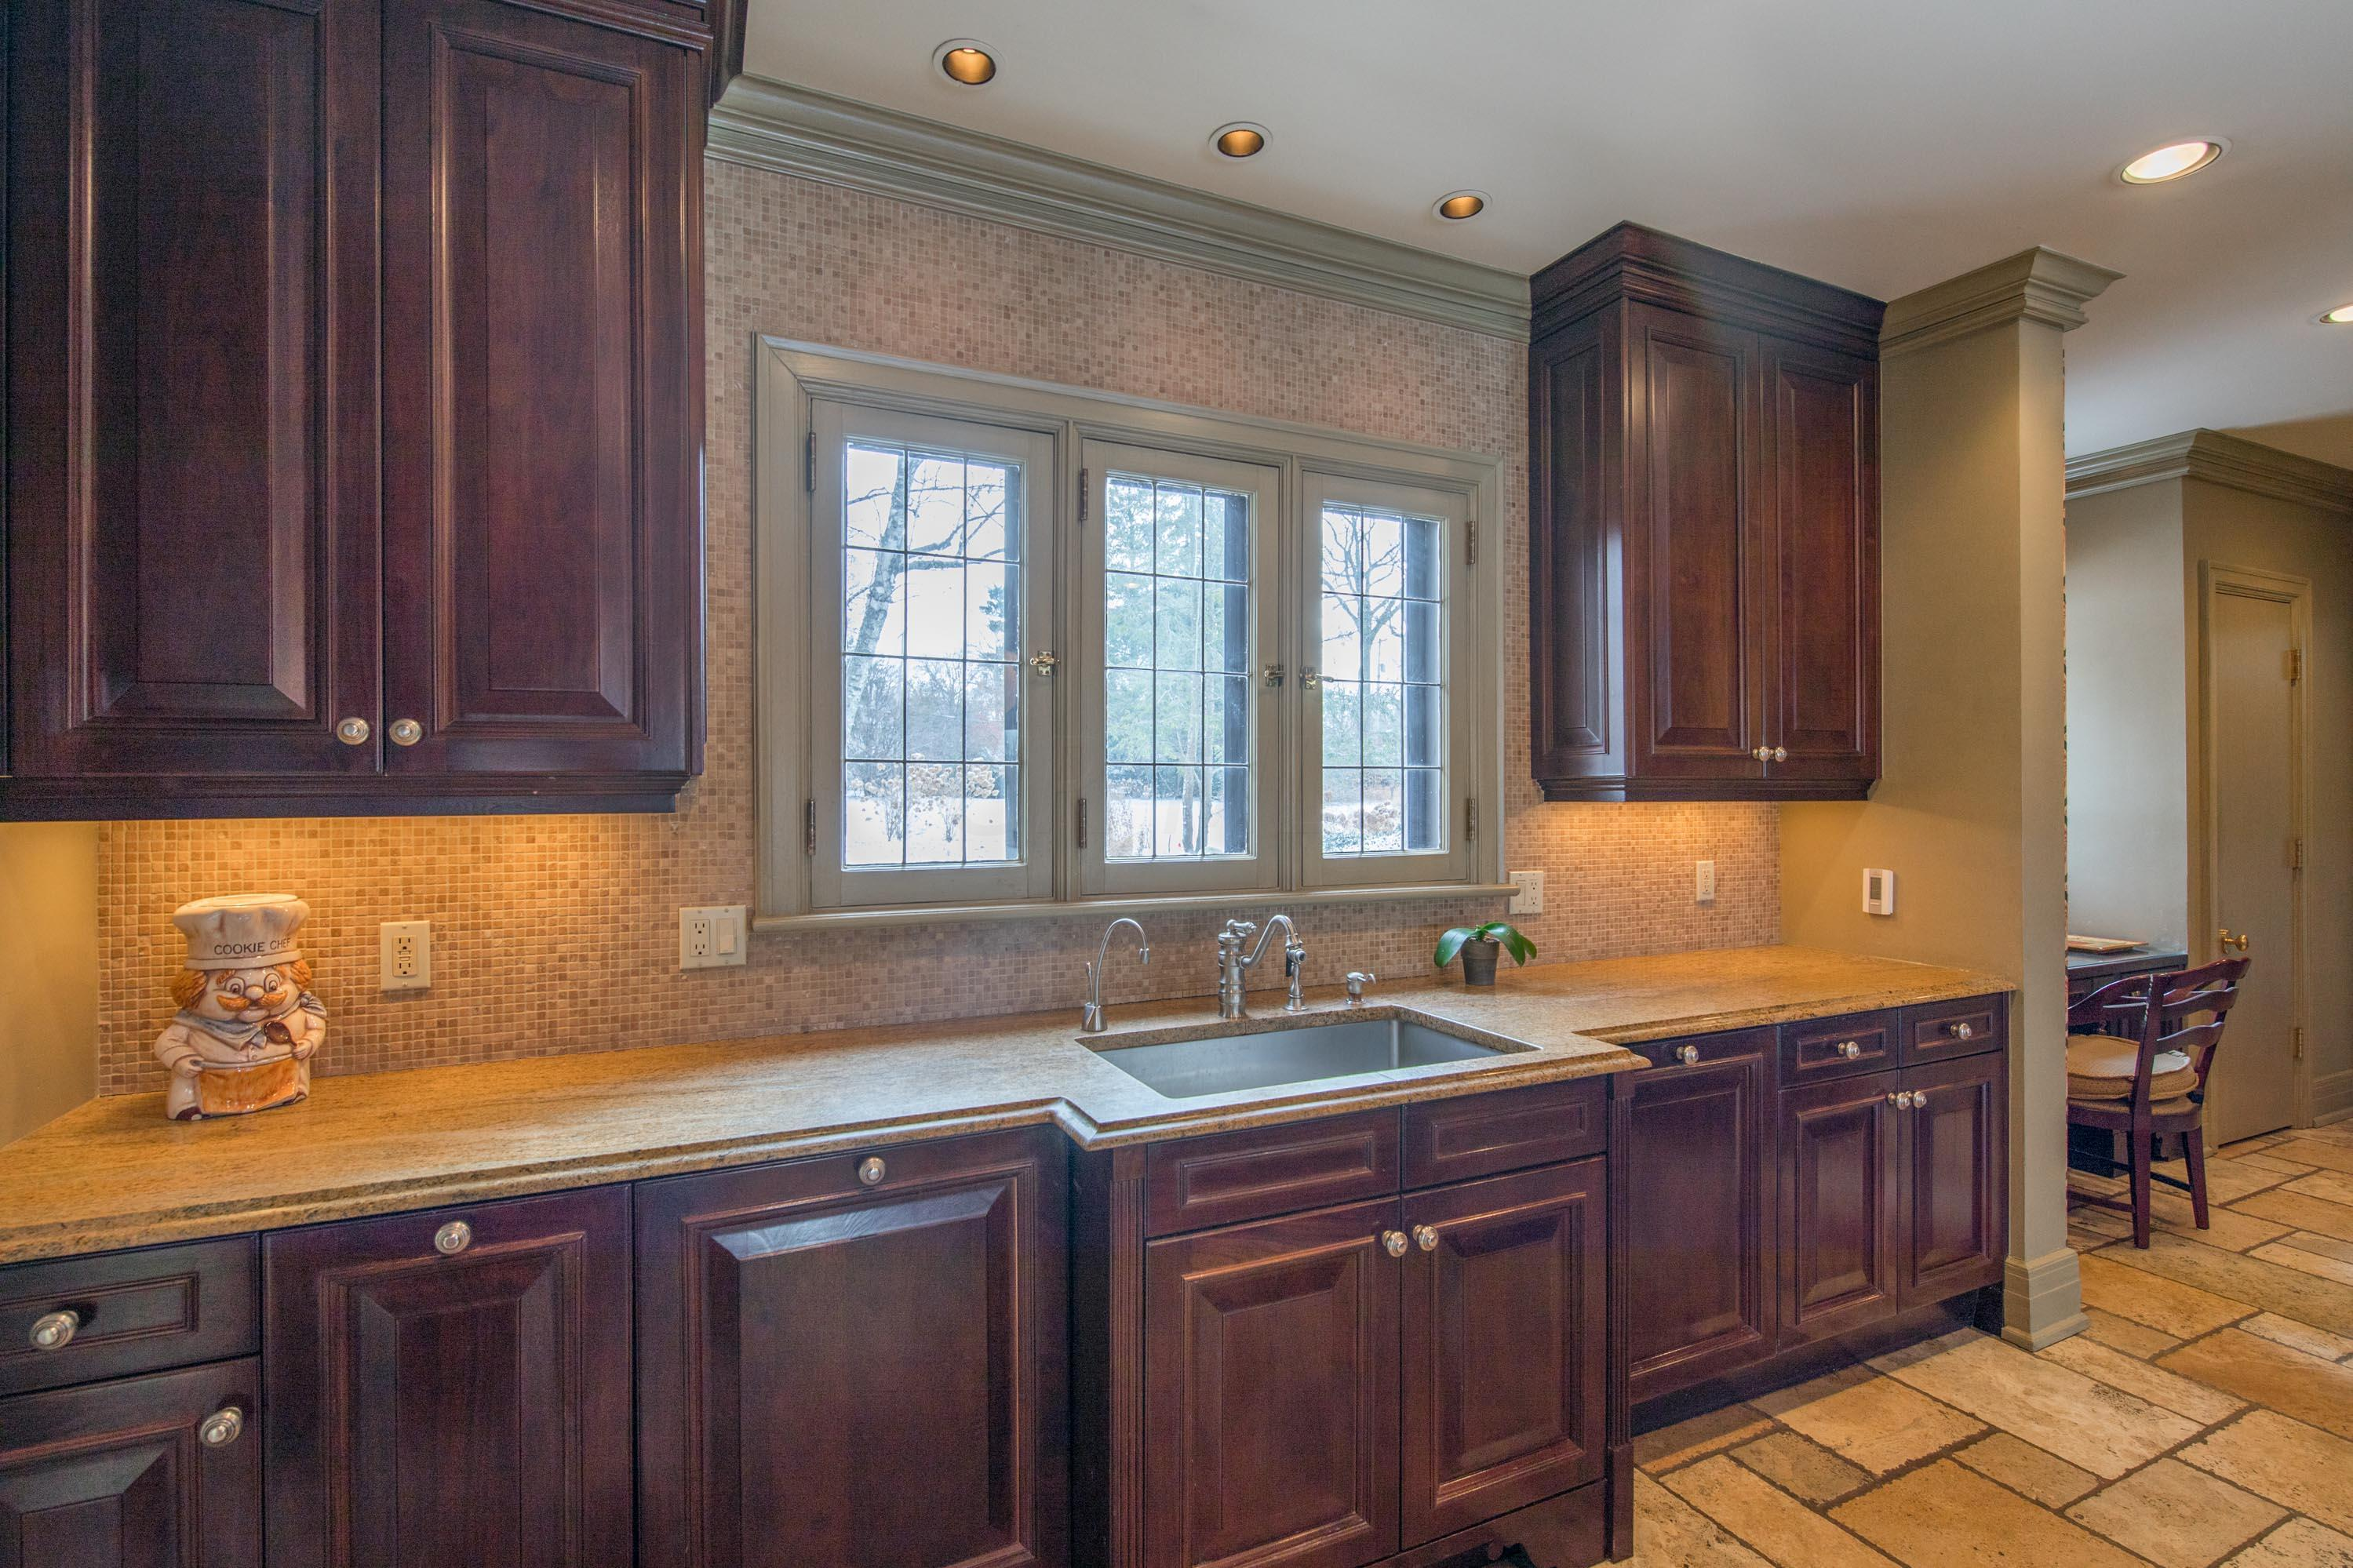 361 N Parkview Avenue, Bexley, OH 43209 - GRT Group